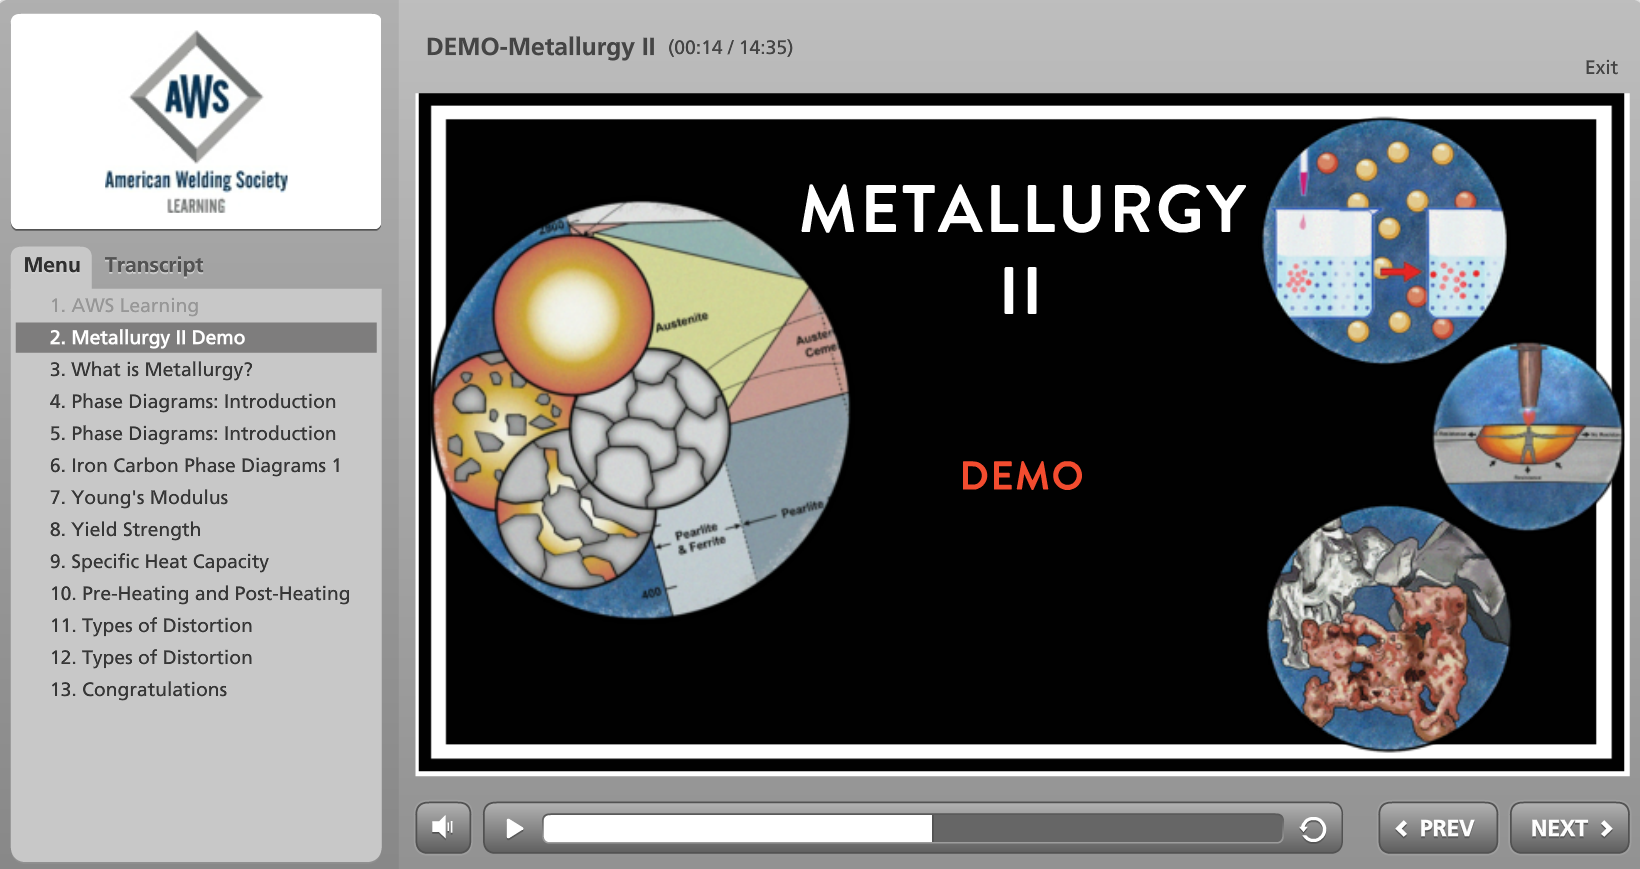 Aws Releases Two New Online Welding Courses American Diagram Of Metallurgy Ii Screenshot